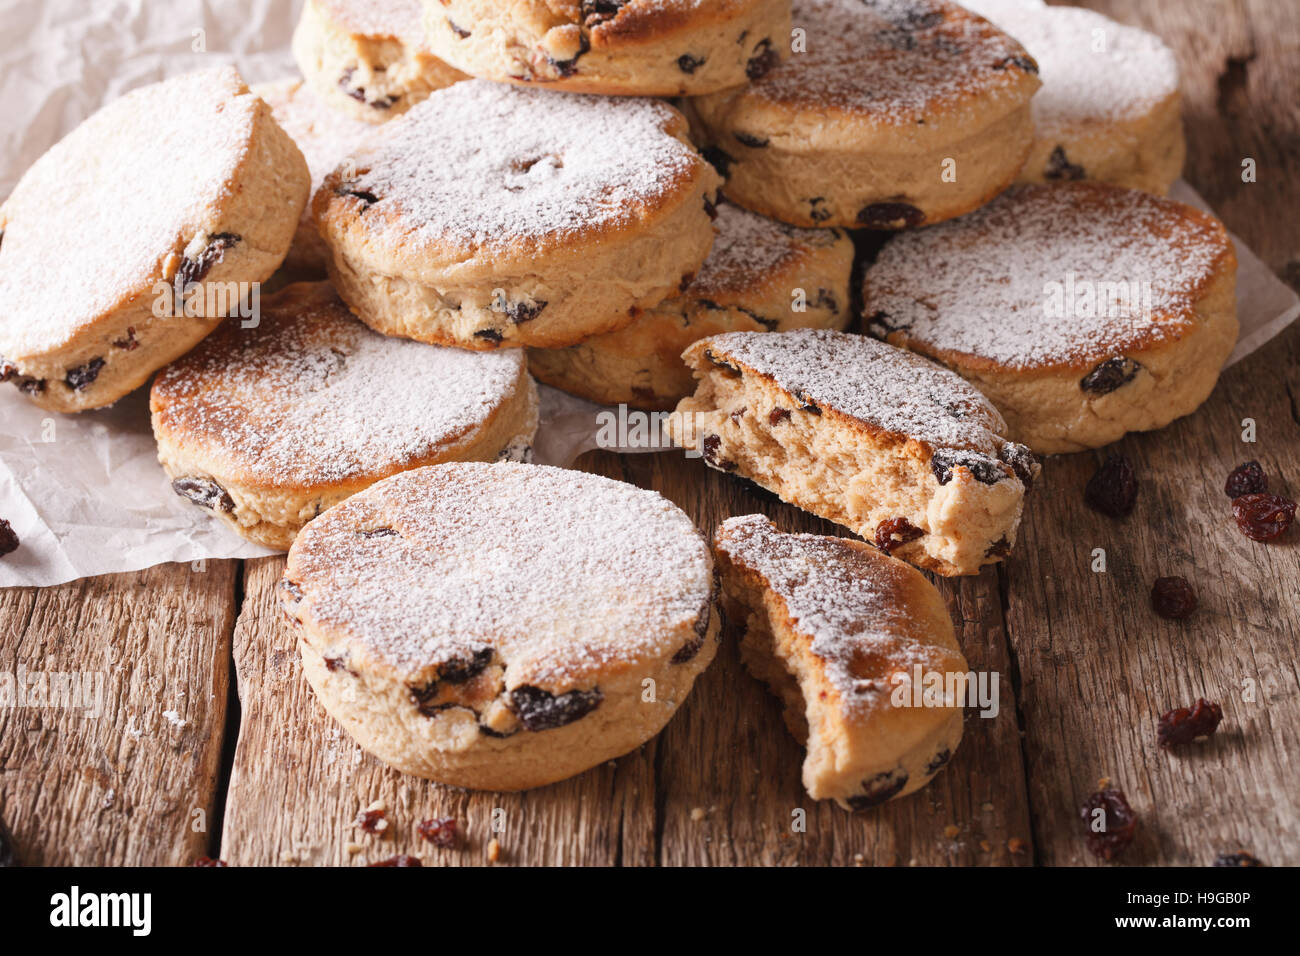 Welsh cuisine: cakes with raisins and powdered sugar close-up on the table. Horizontal - Stock Image